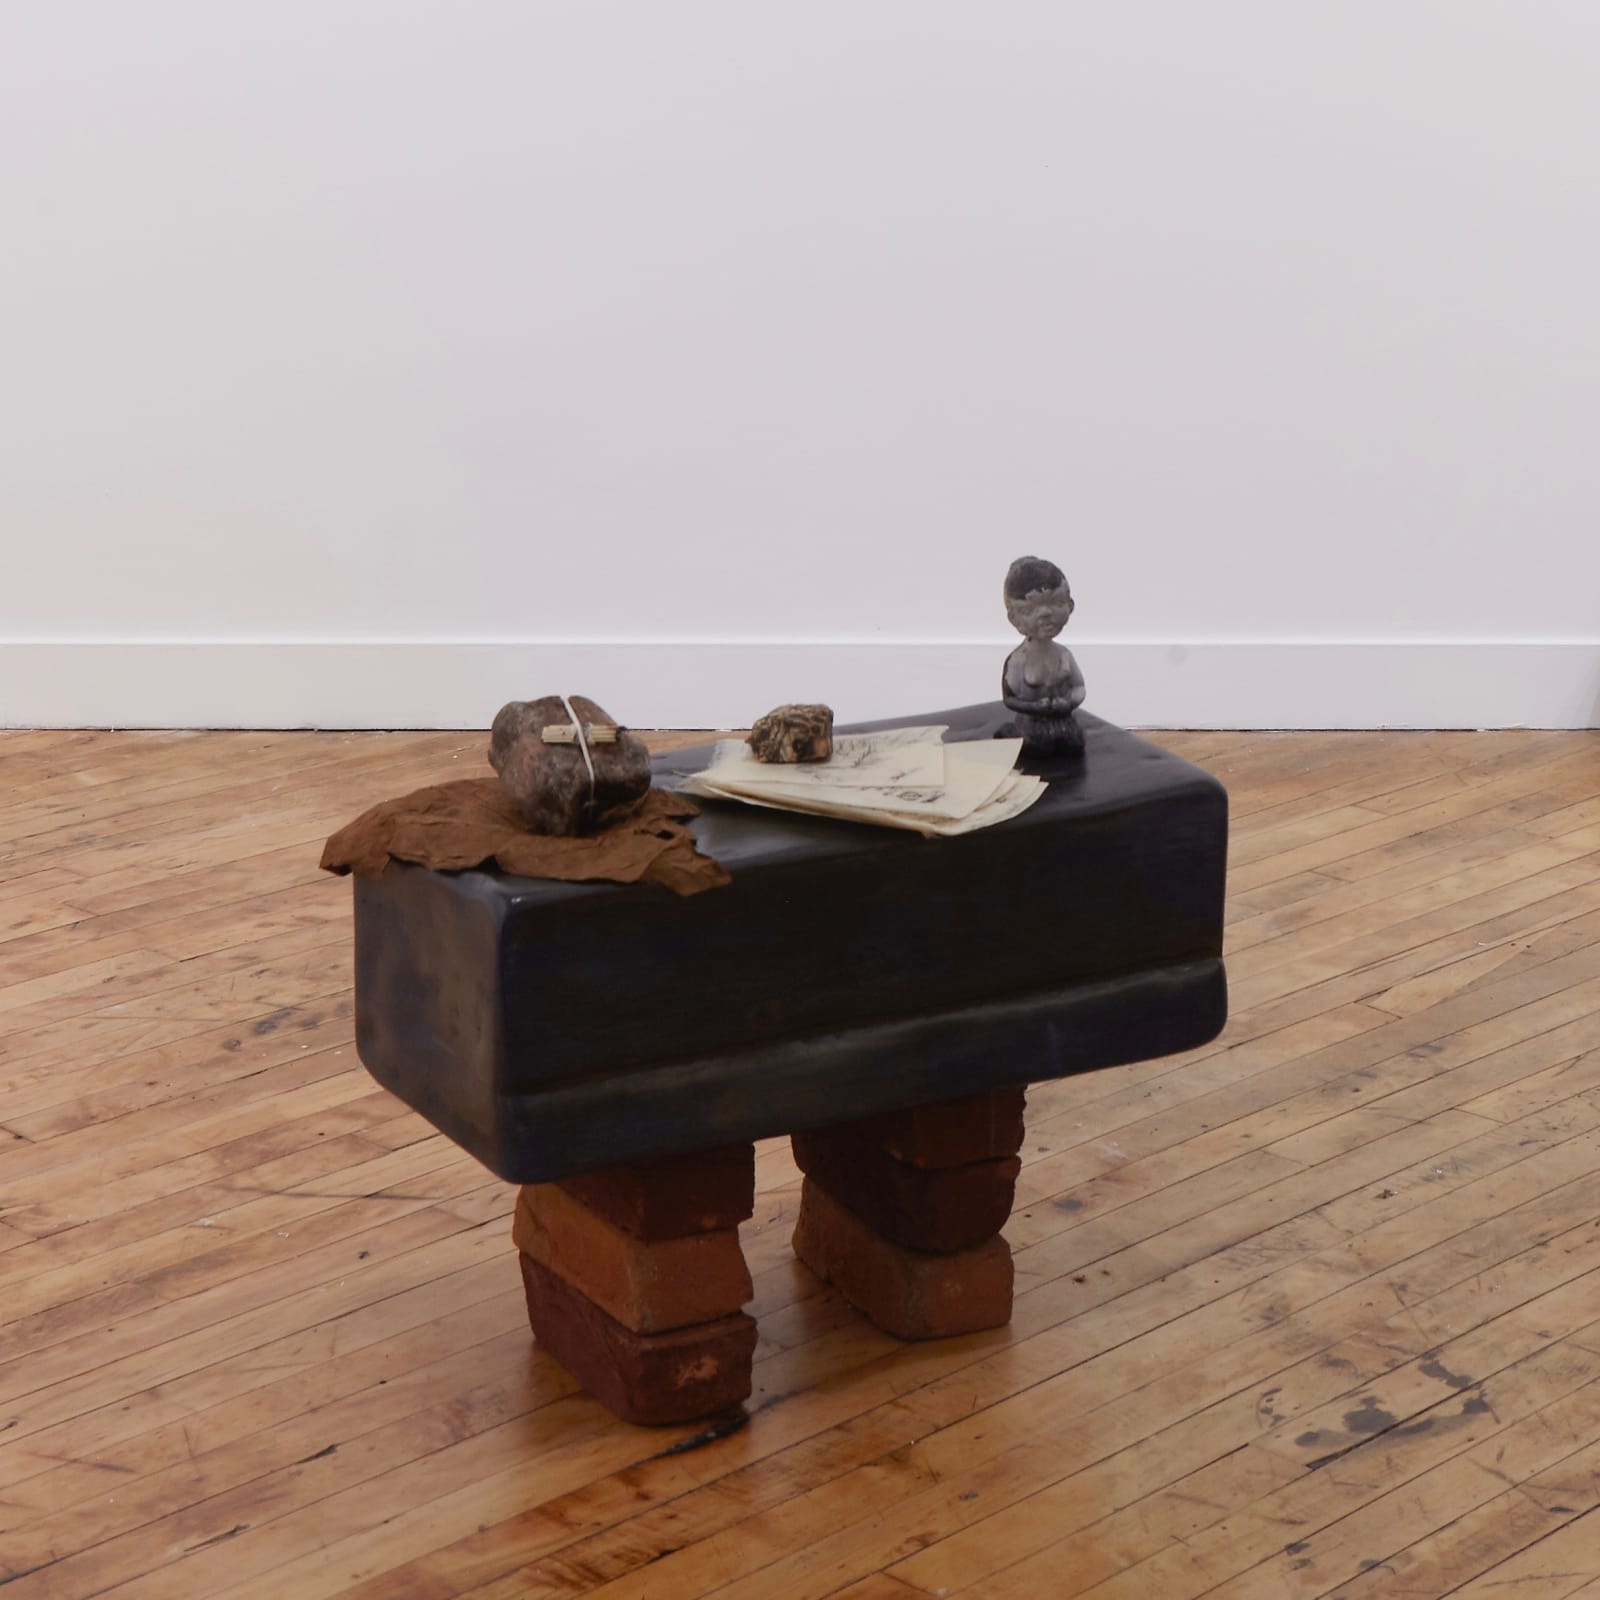 Michael Demps  I Made A Promise To The River: Acknowledgement and Gratitude, 2019  Wood, Wood Stain, Candle wax, Piezo Electric Crystals (Rochelle Salt), Paper, Graphite, Tobacco, Plaster, Granite, Cotton, Matches, Handmade Bricks  23 x 24 x 12 in (58.4 x 61 x 30.5 cm)